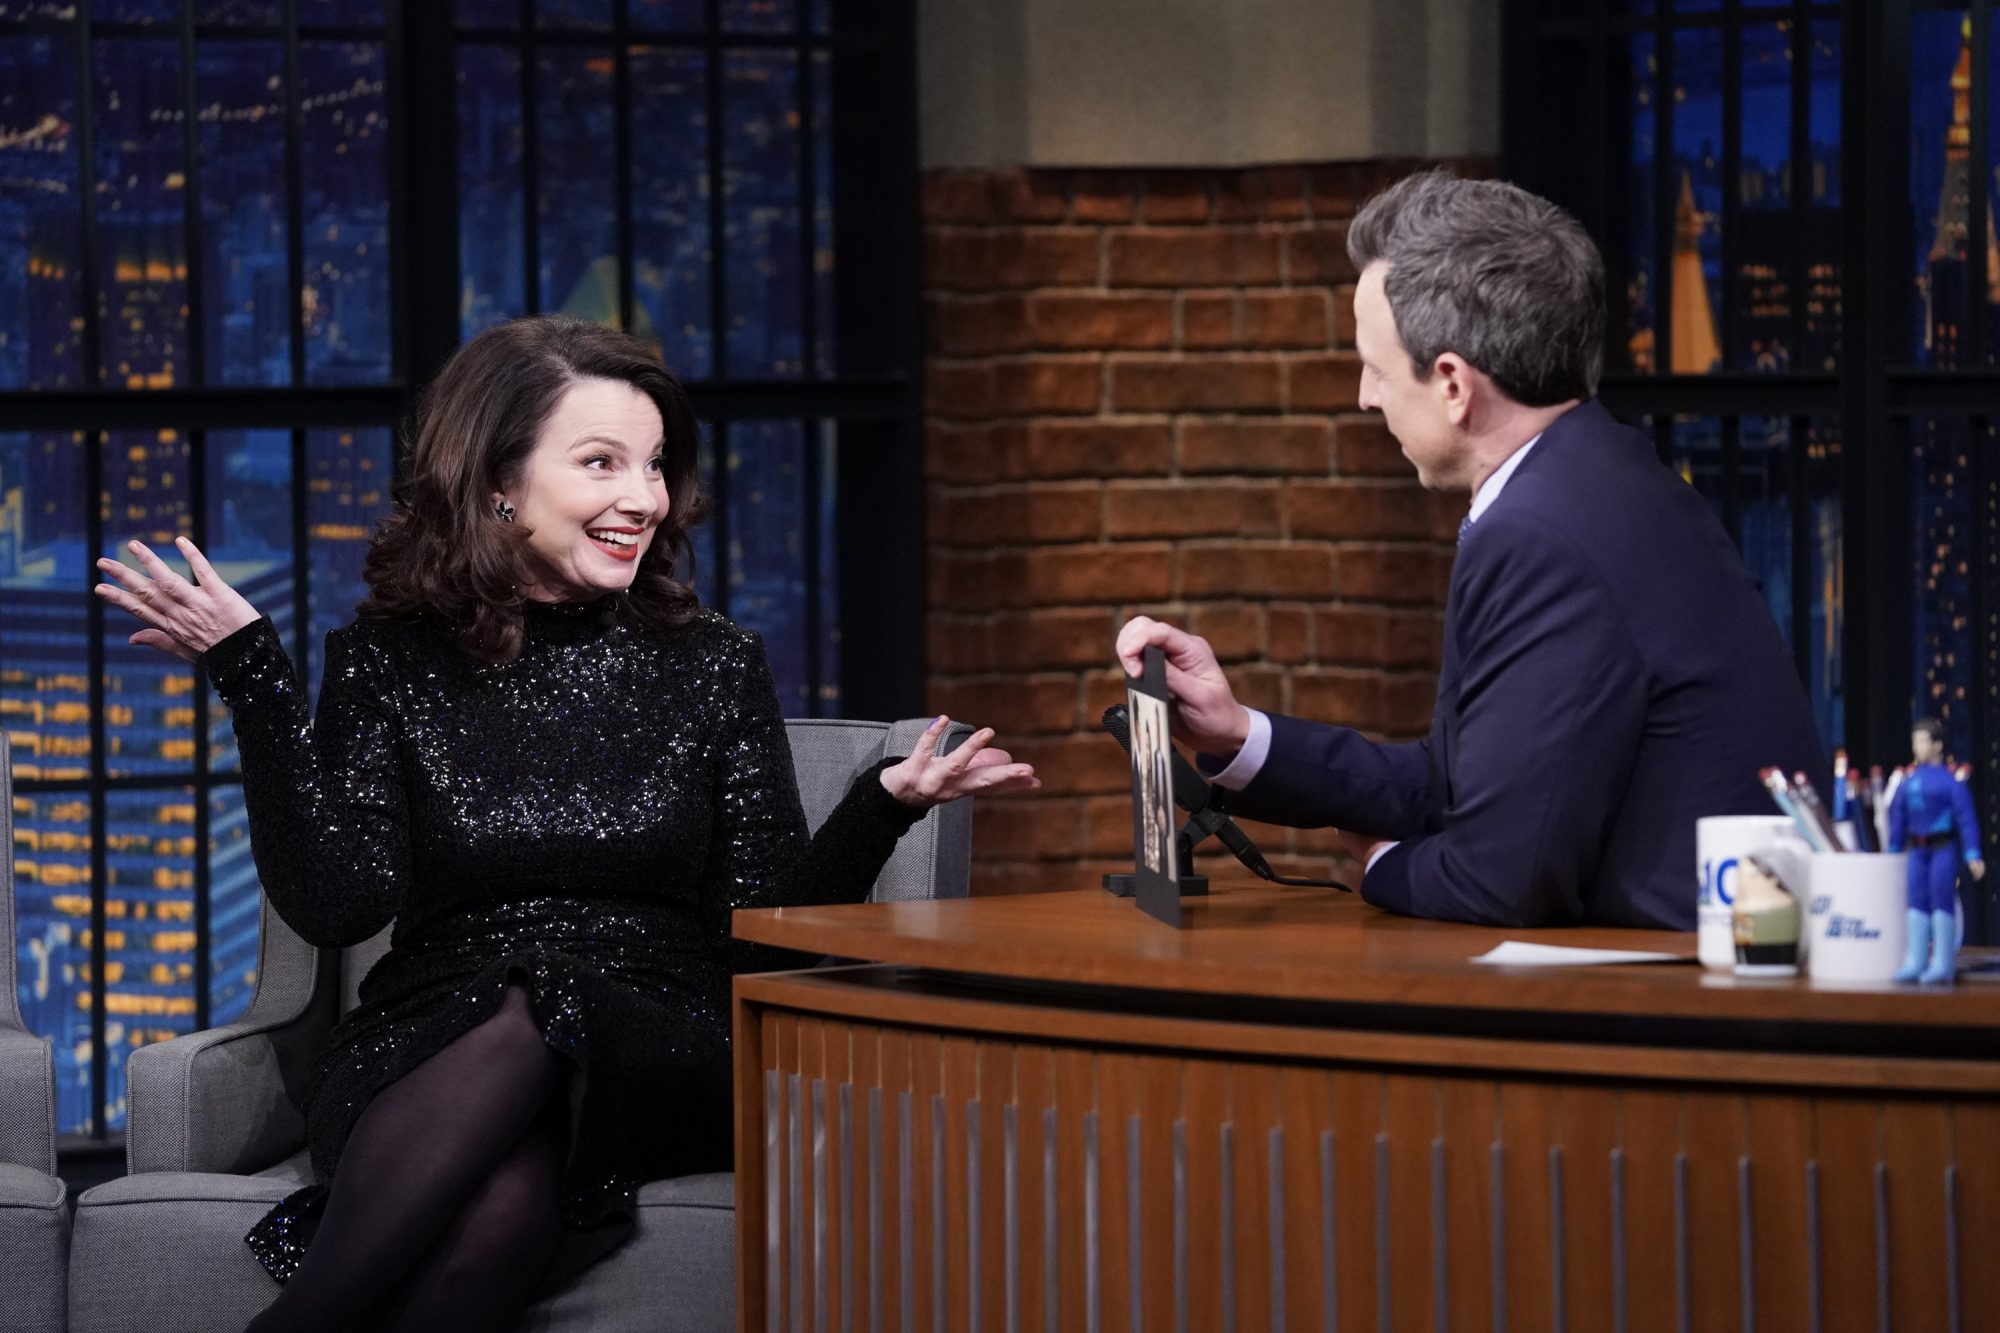 Fran Drescher during an interview with host Seth Meyers